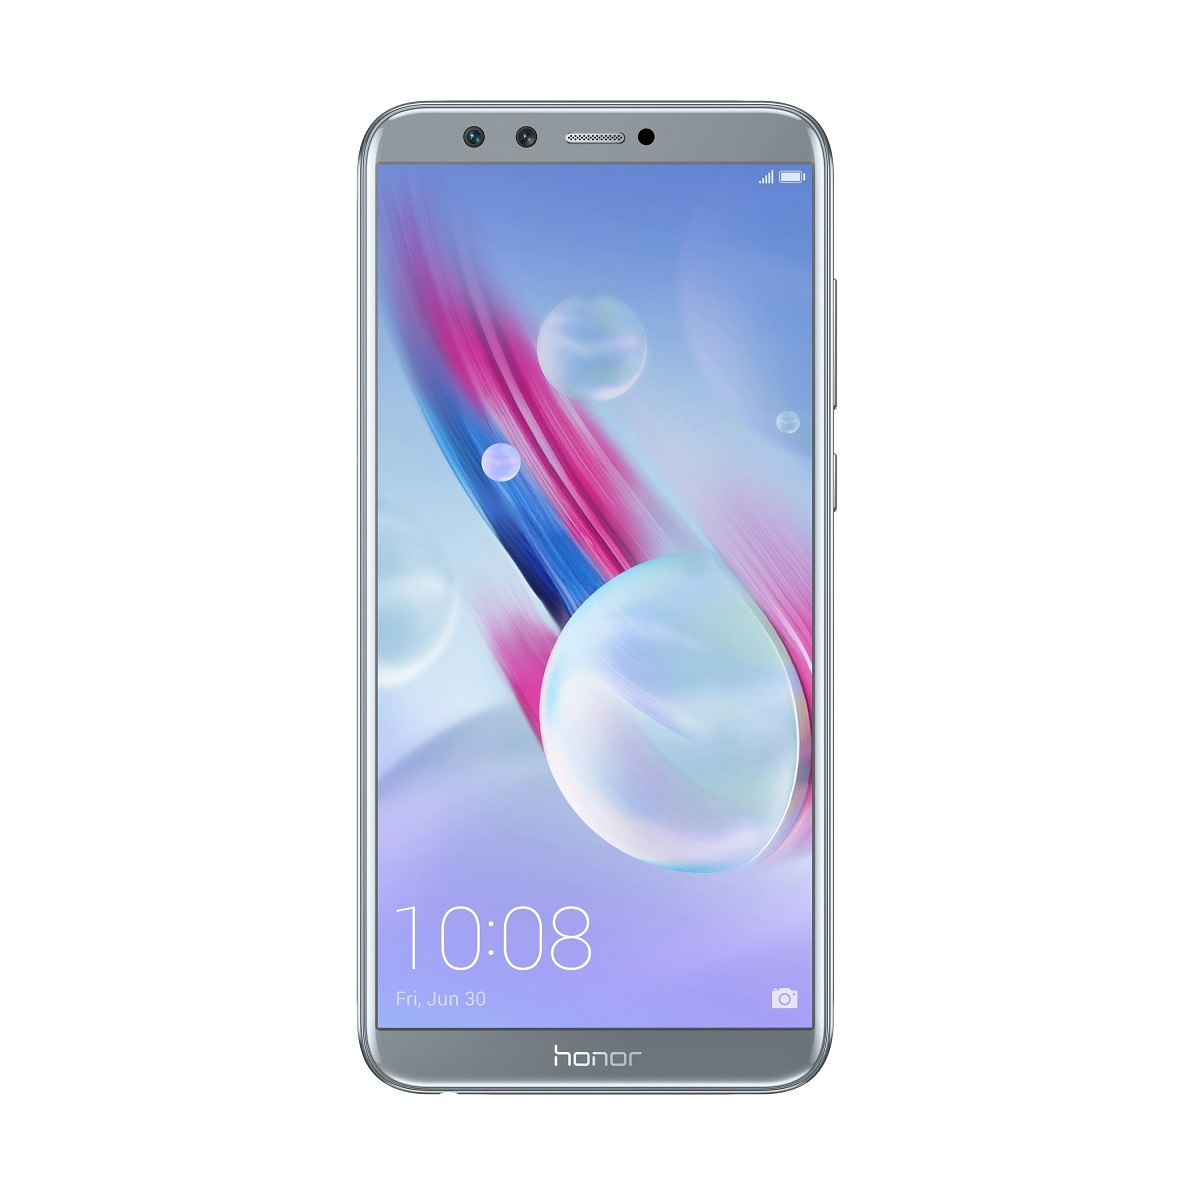 Huawei launches the Honor 9 Lite quad-lens smartphone globally